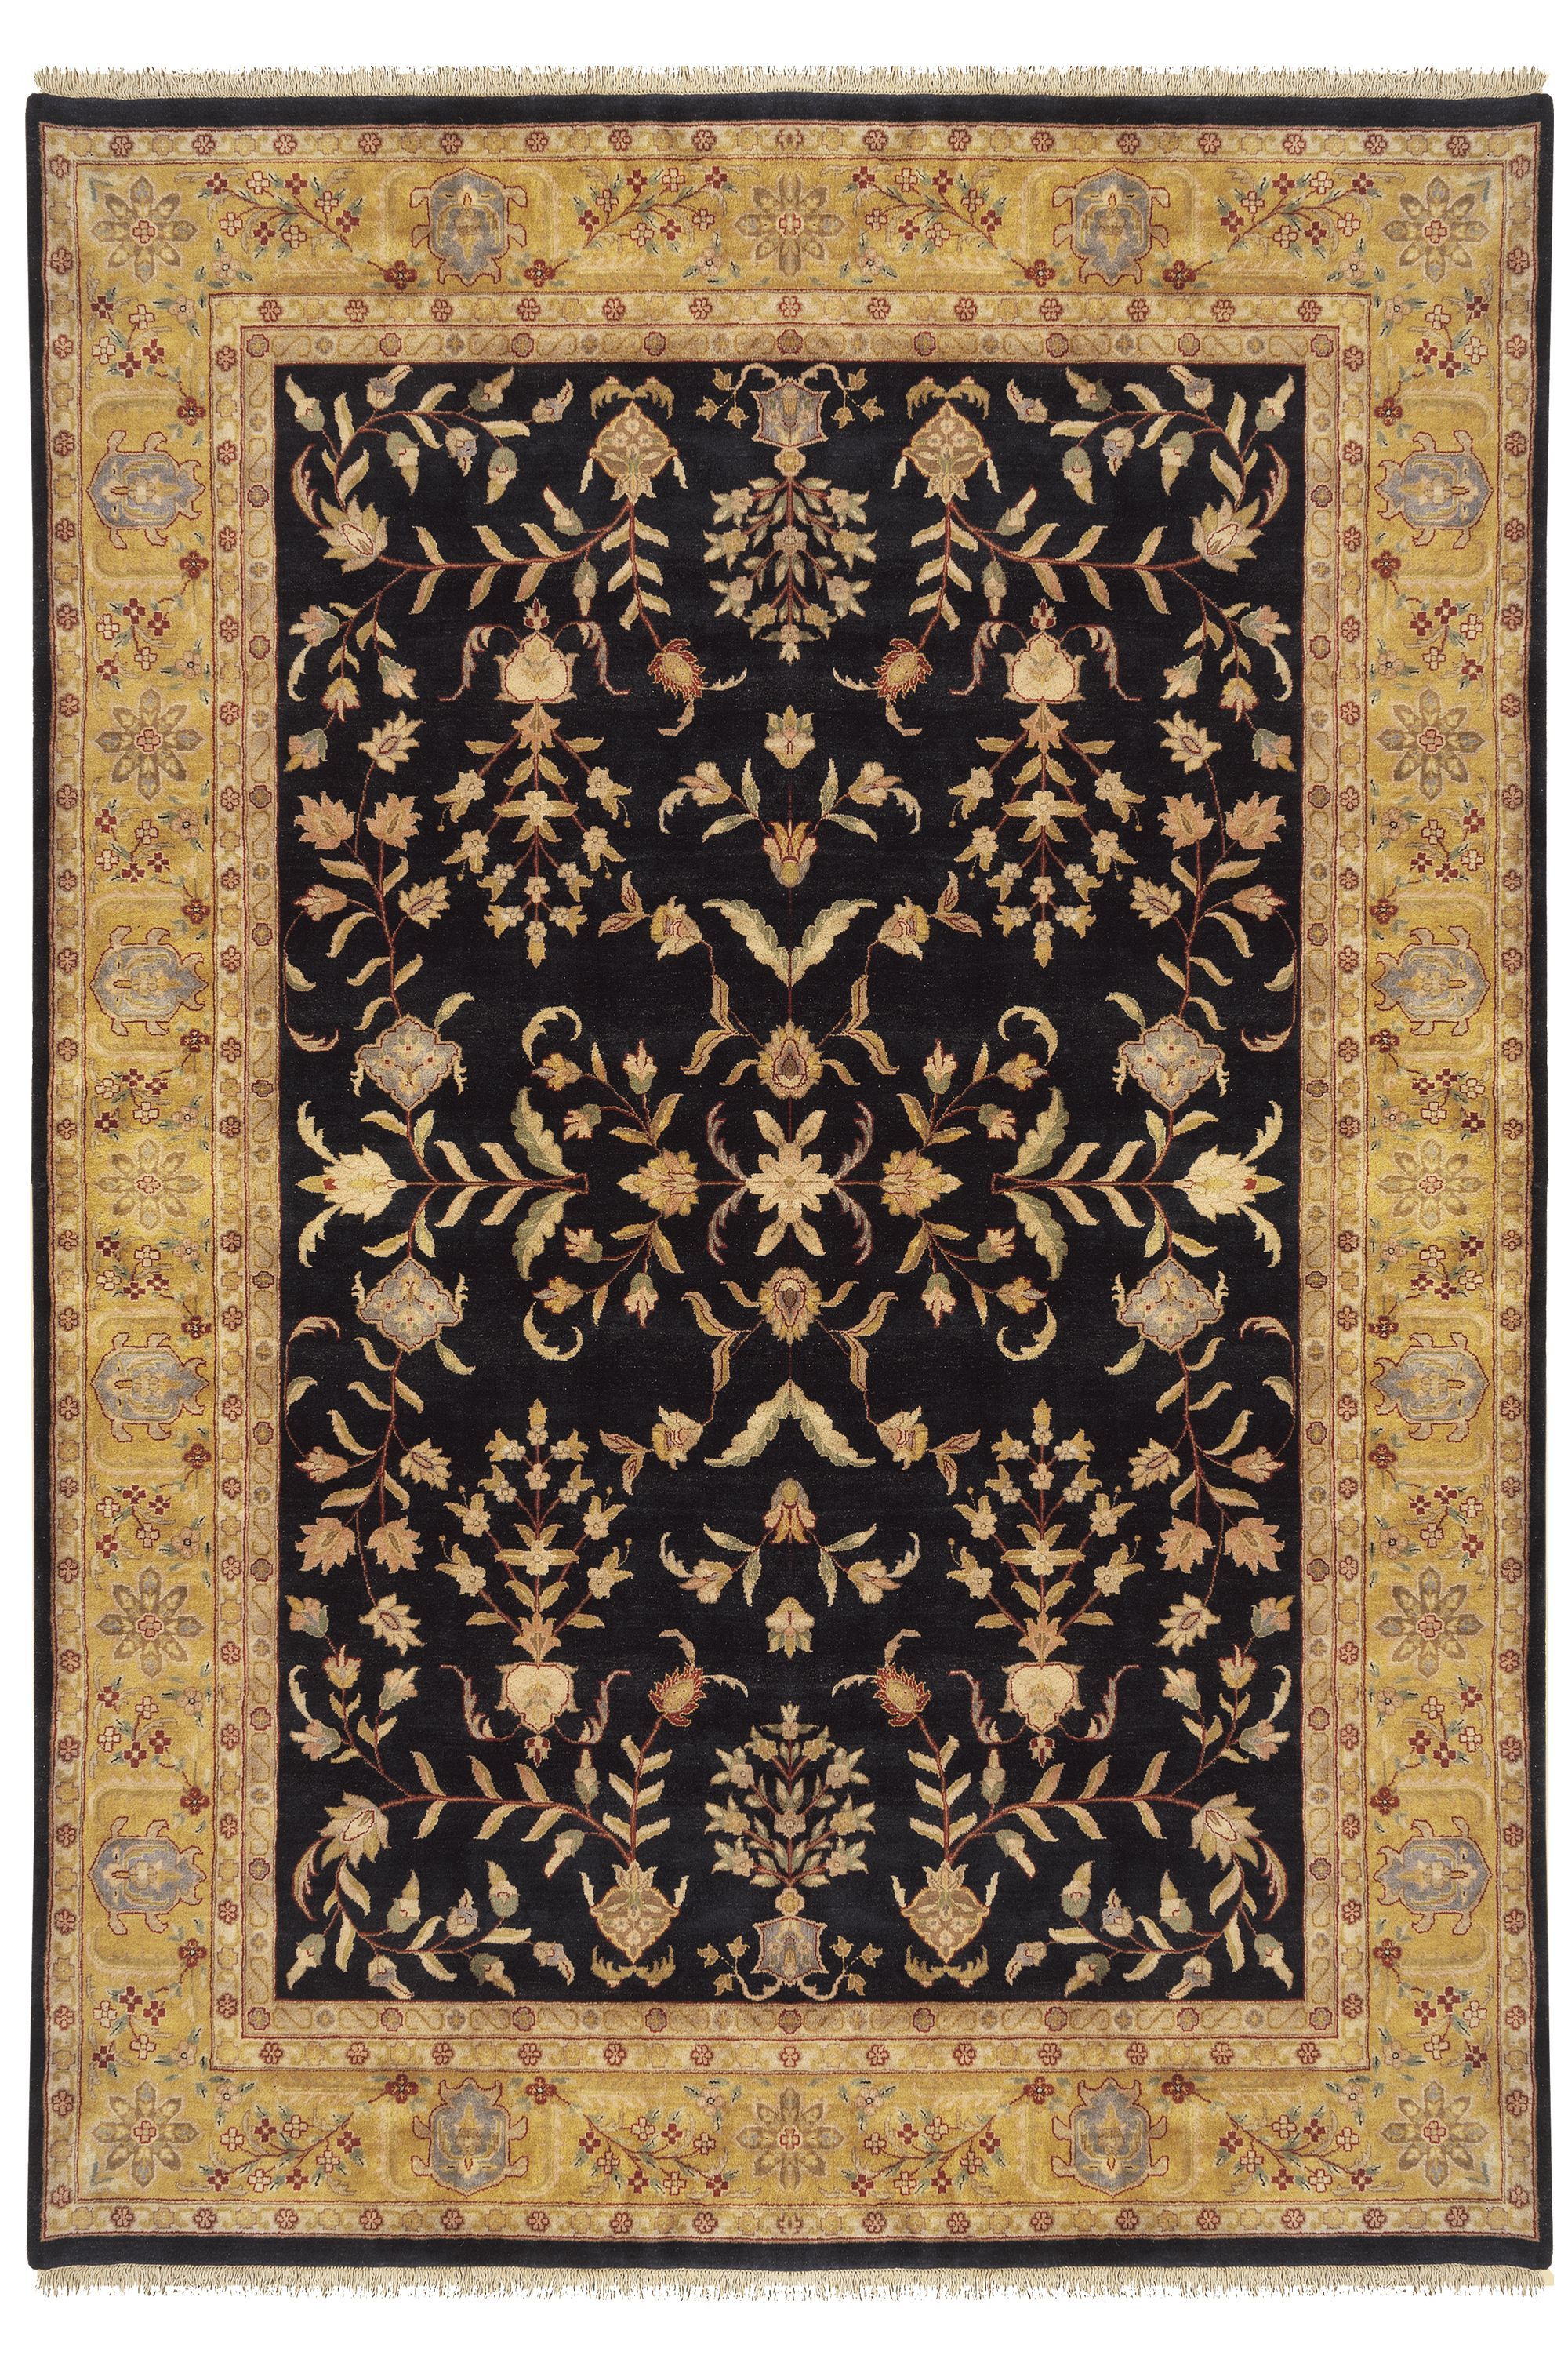 Hand Knotted Fine Quality Tabriz Oriental Rug In Black And Gold From Nejad Rugs Www Nejad Com In Doylestown Buck Oriental Rug Handmade Oriental Rugs Rug Design